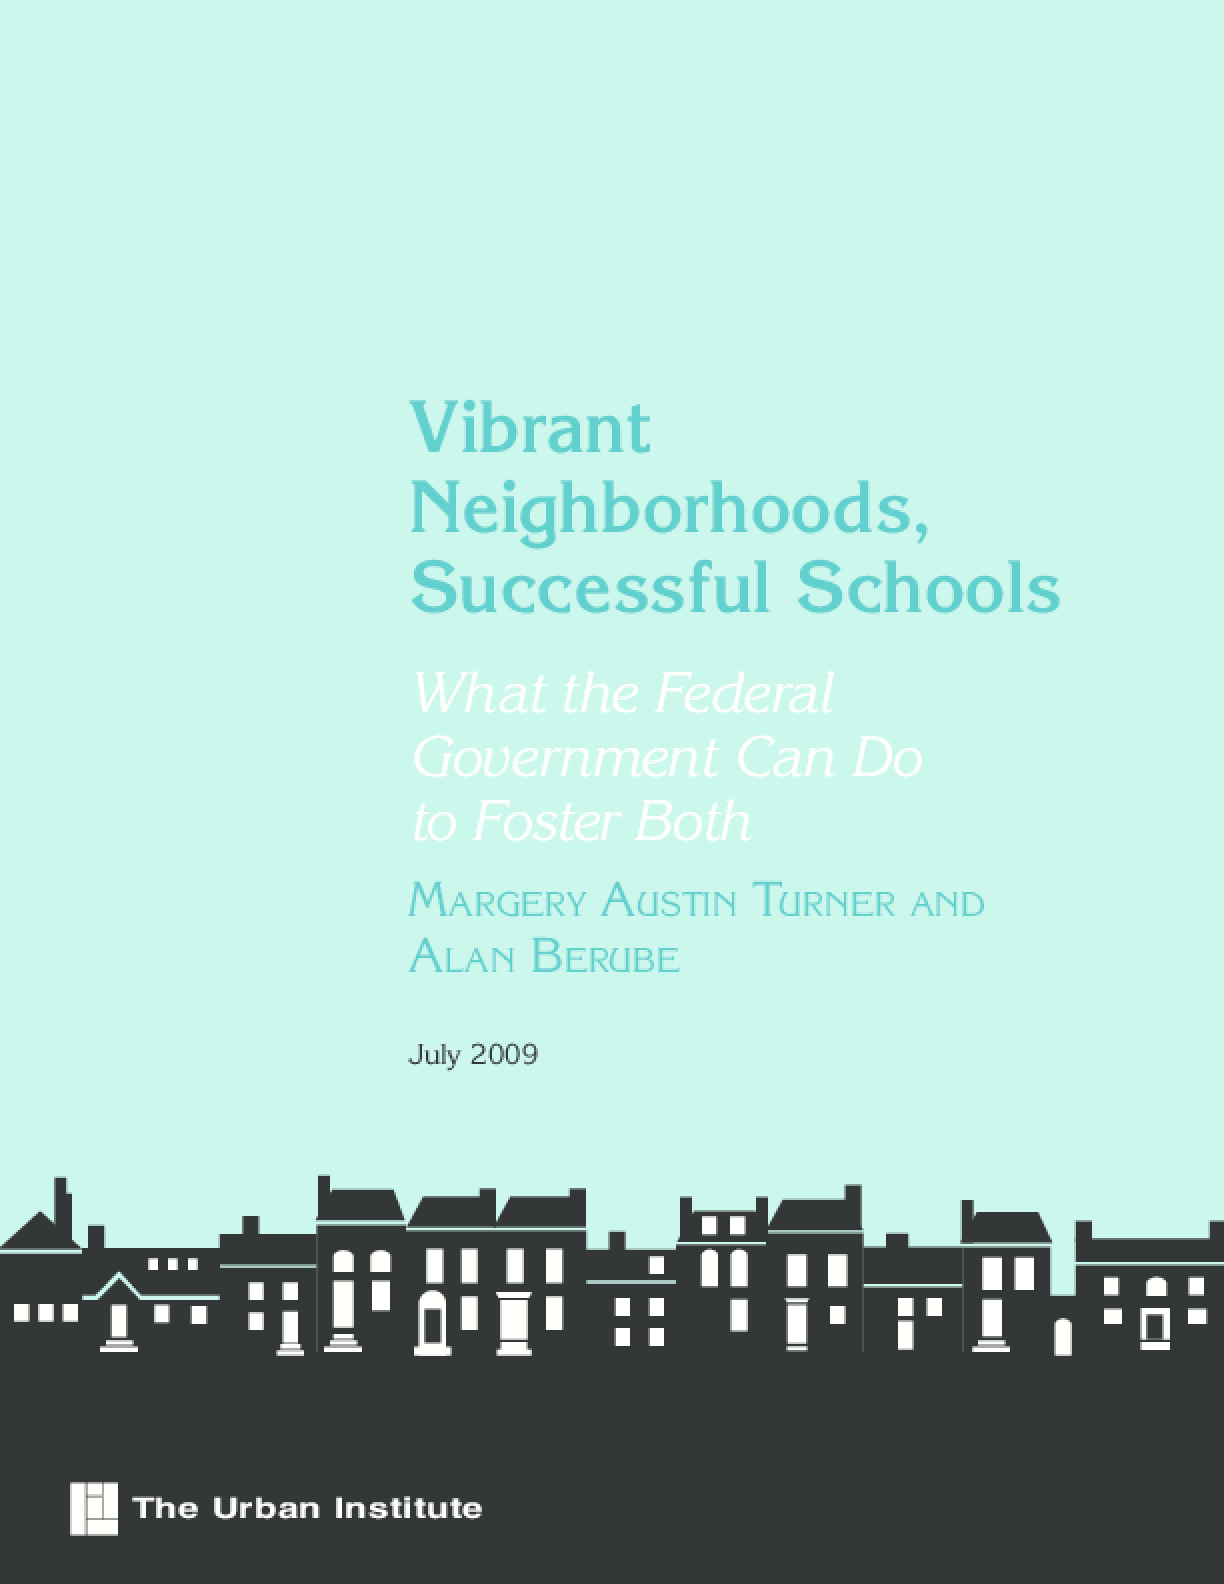 Vibrant Neighborhoods, Successful Schools: What the Federal Government Can Do to Foster Both